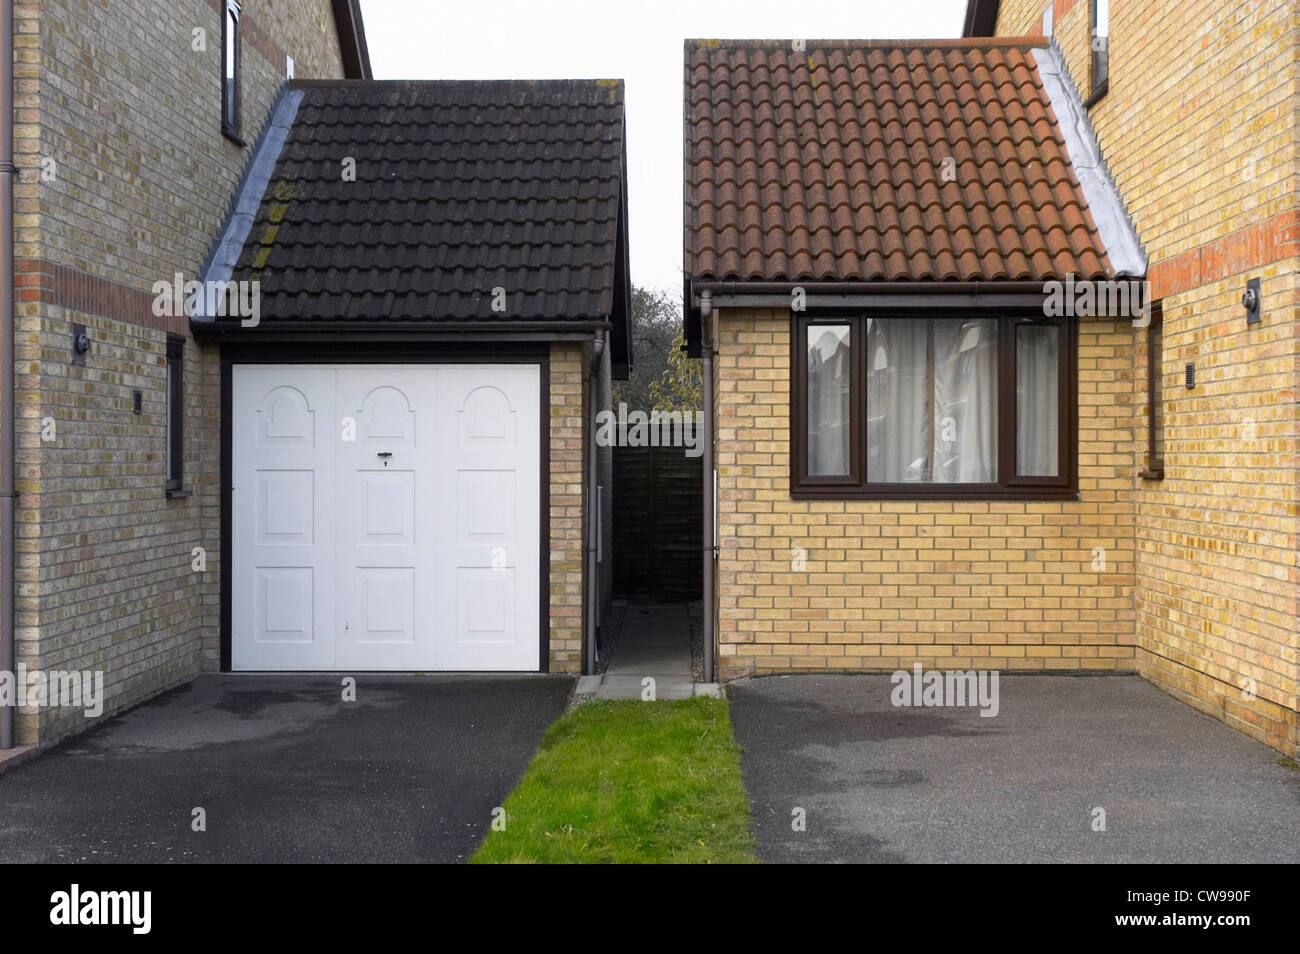 Garage Home Extension New Garage Extension And Entrance On A Side Of Houses Stock Photo